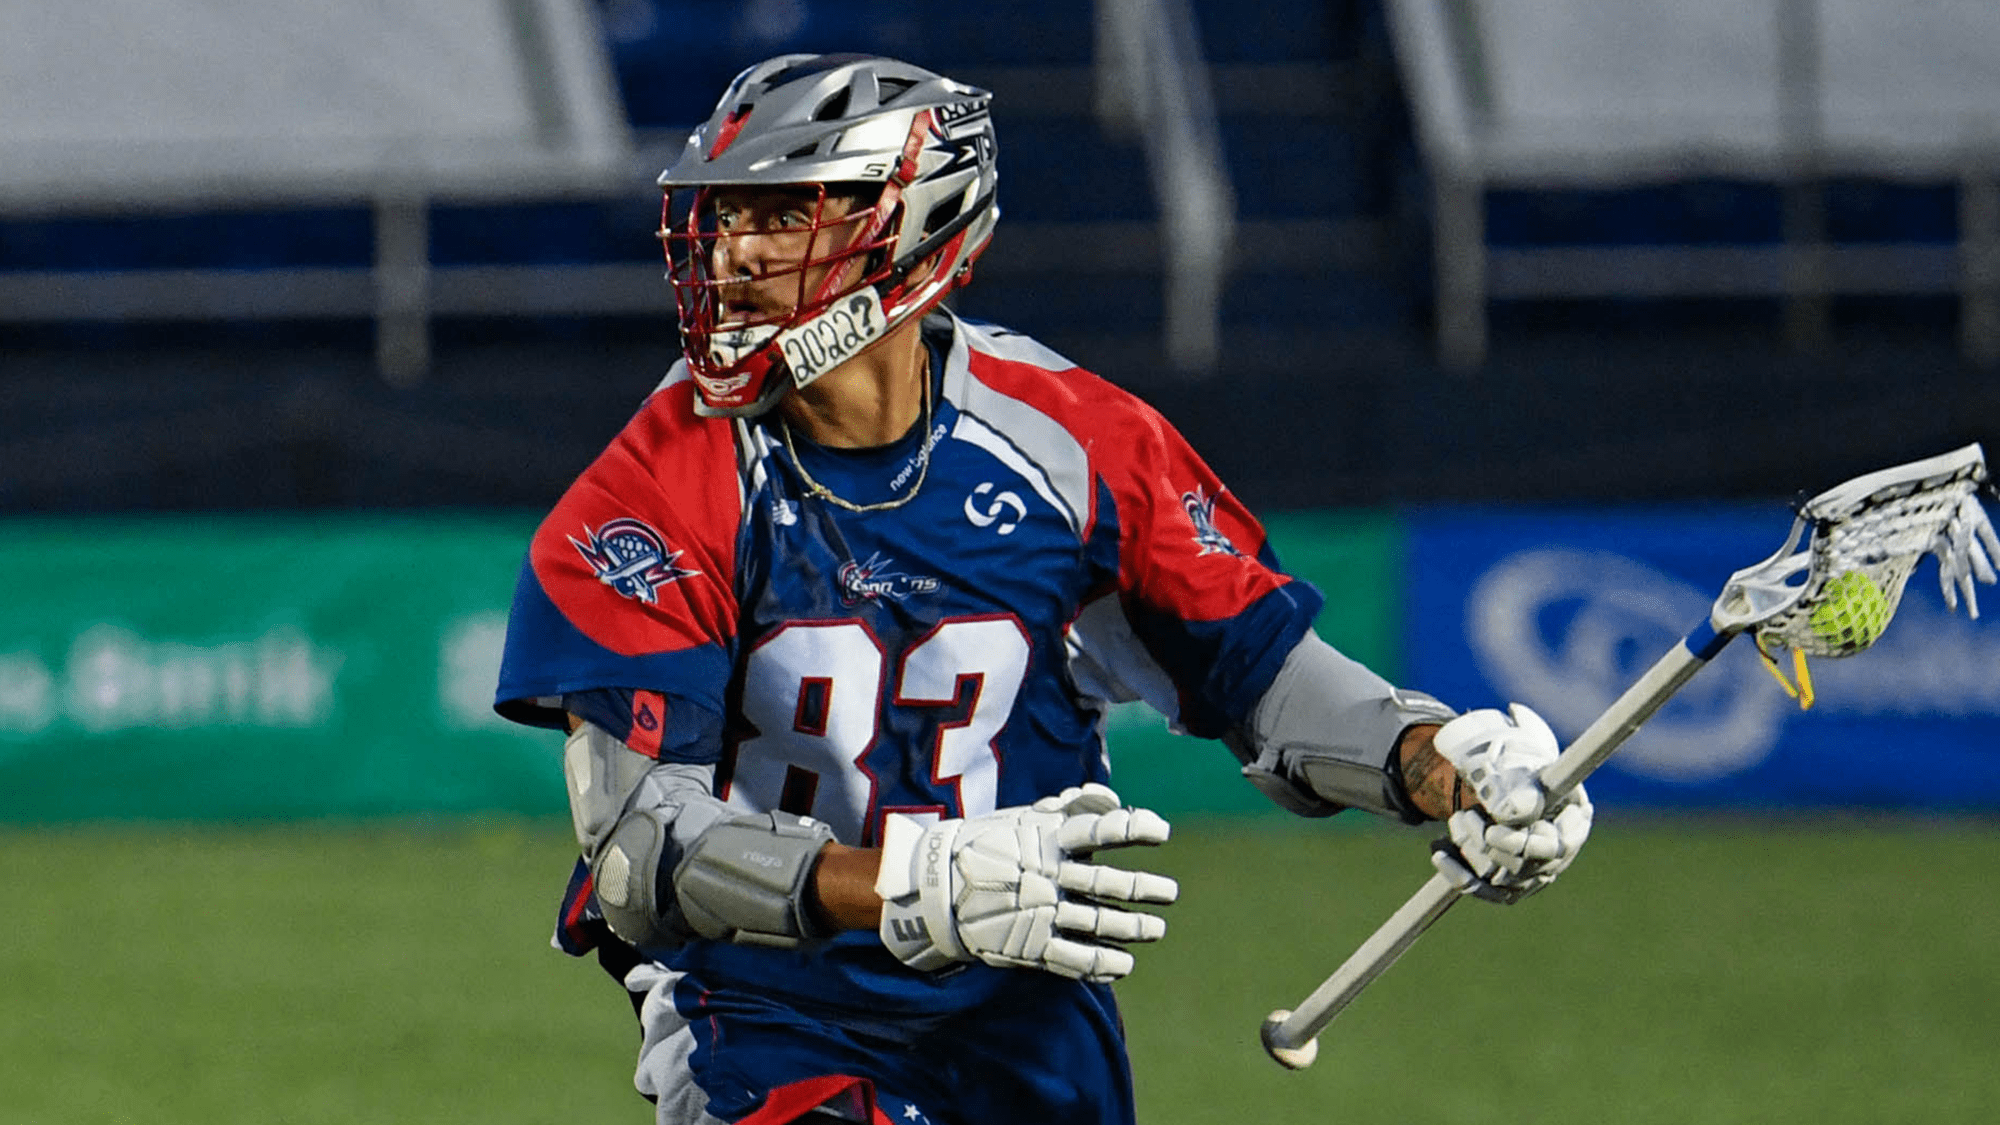 Don't Take Lacrosse Away From Us, the Haudenosaunee Randy Staats Boston Cannons MLL Major League Lacrosse